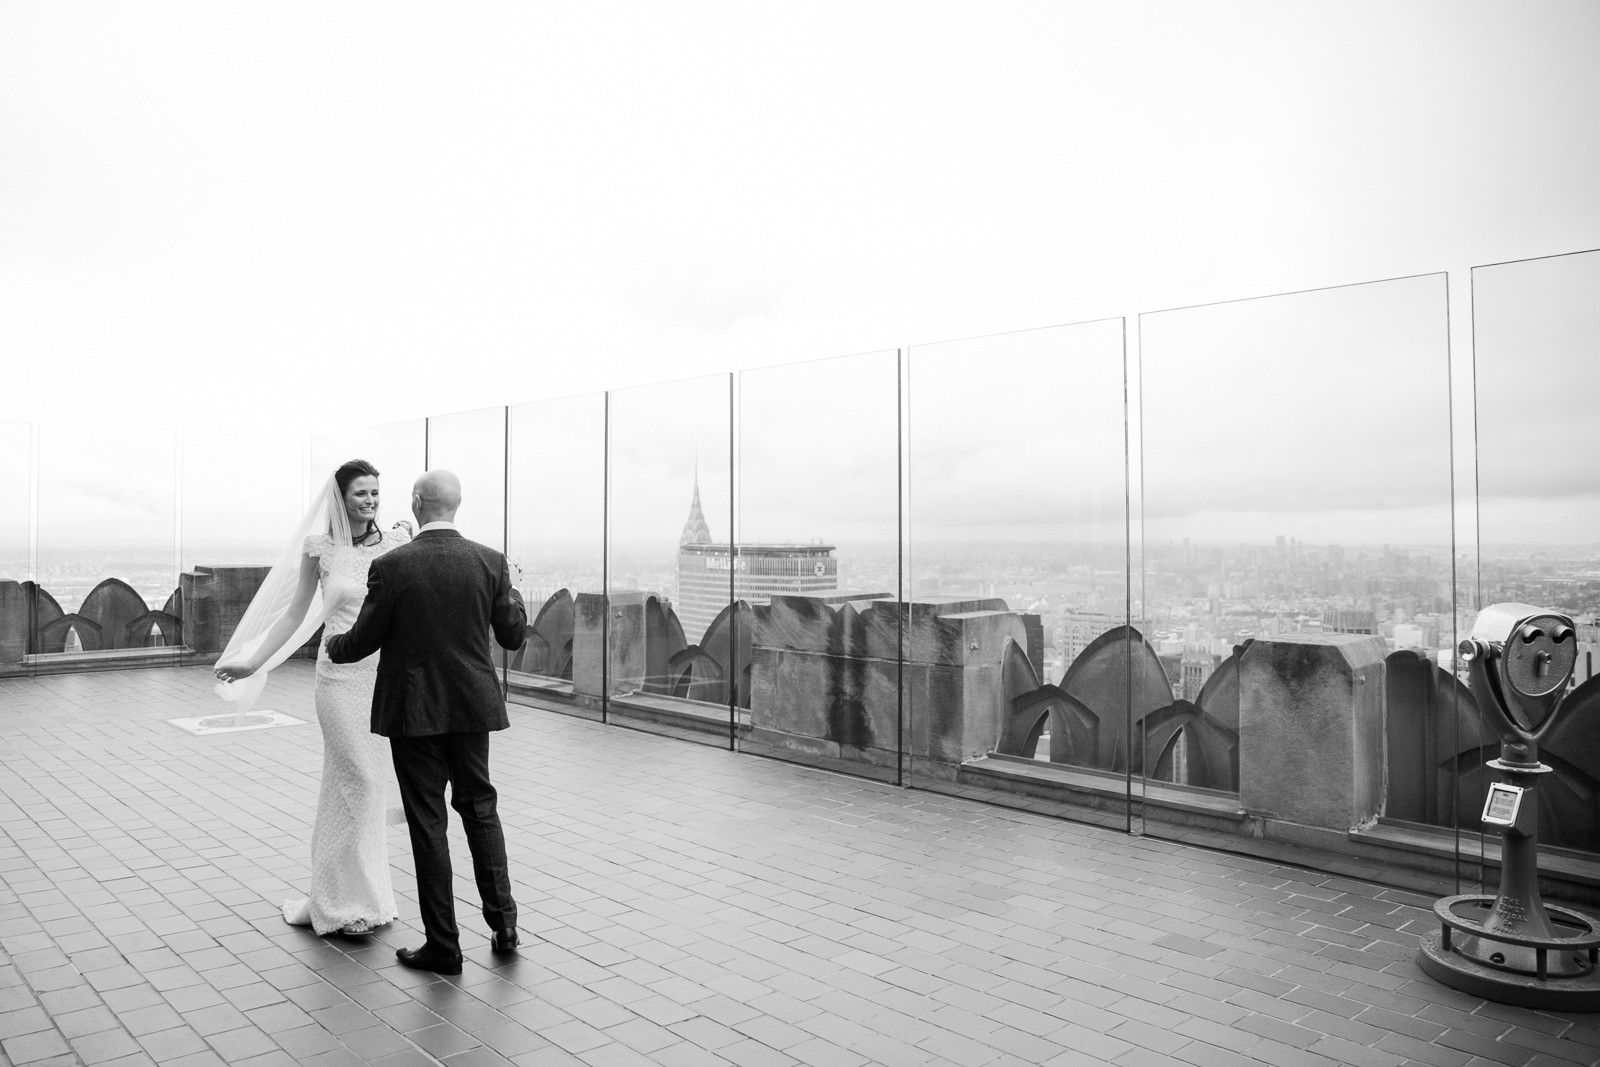 NYC-wedding-photos-by-Tanya-Isaeva-5.jpg